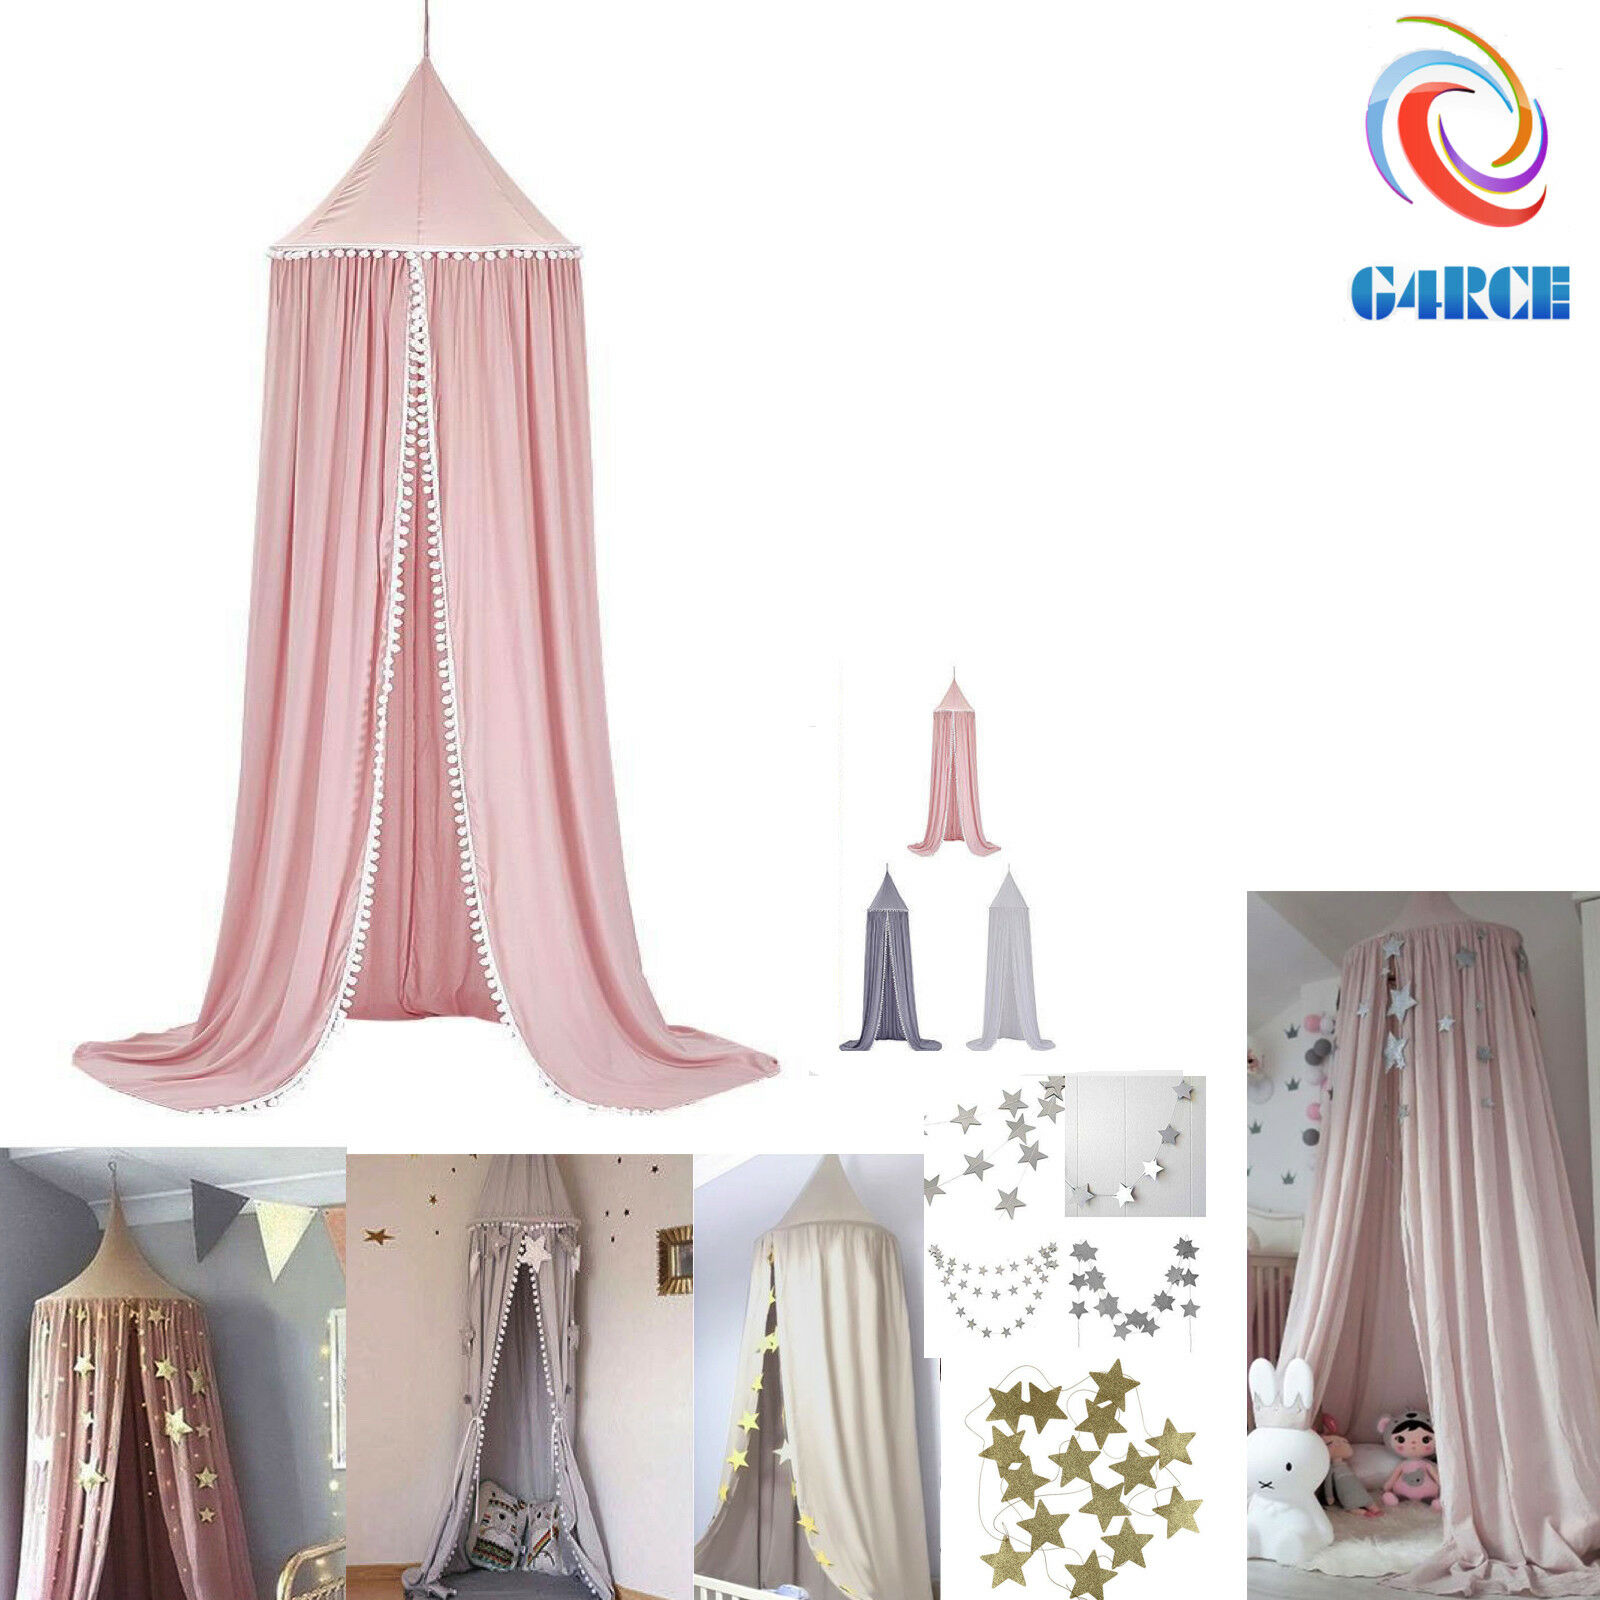 round ball children s bed canopy bedcover